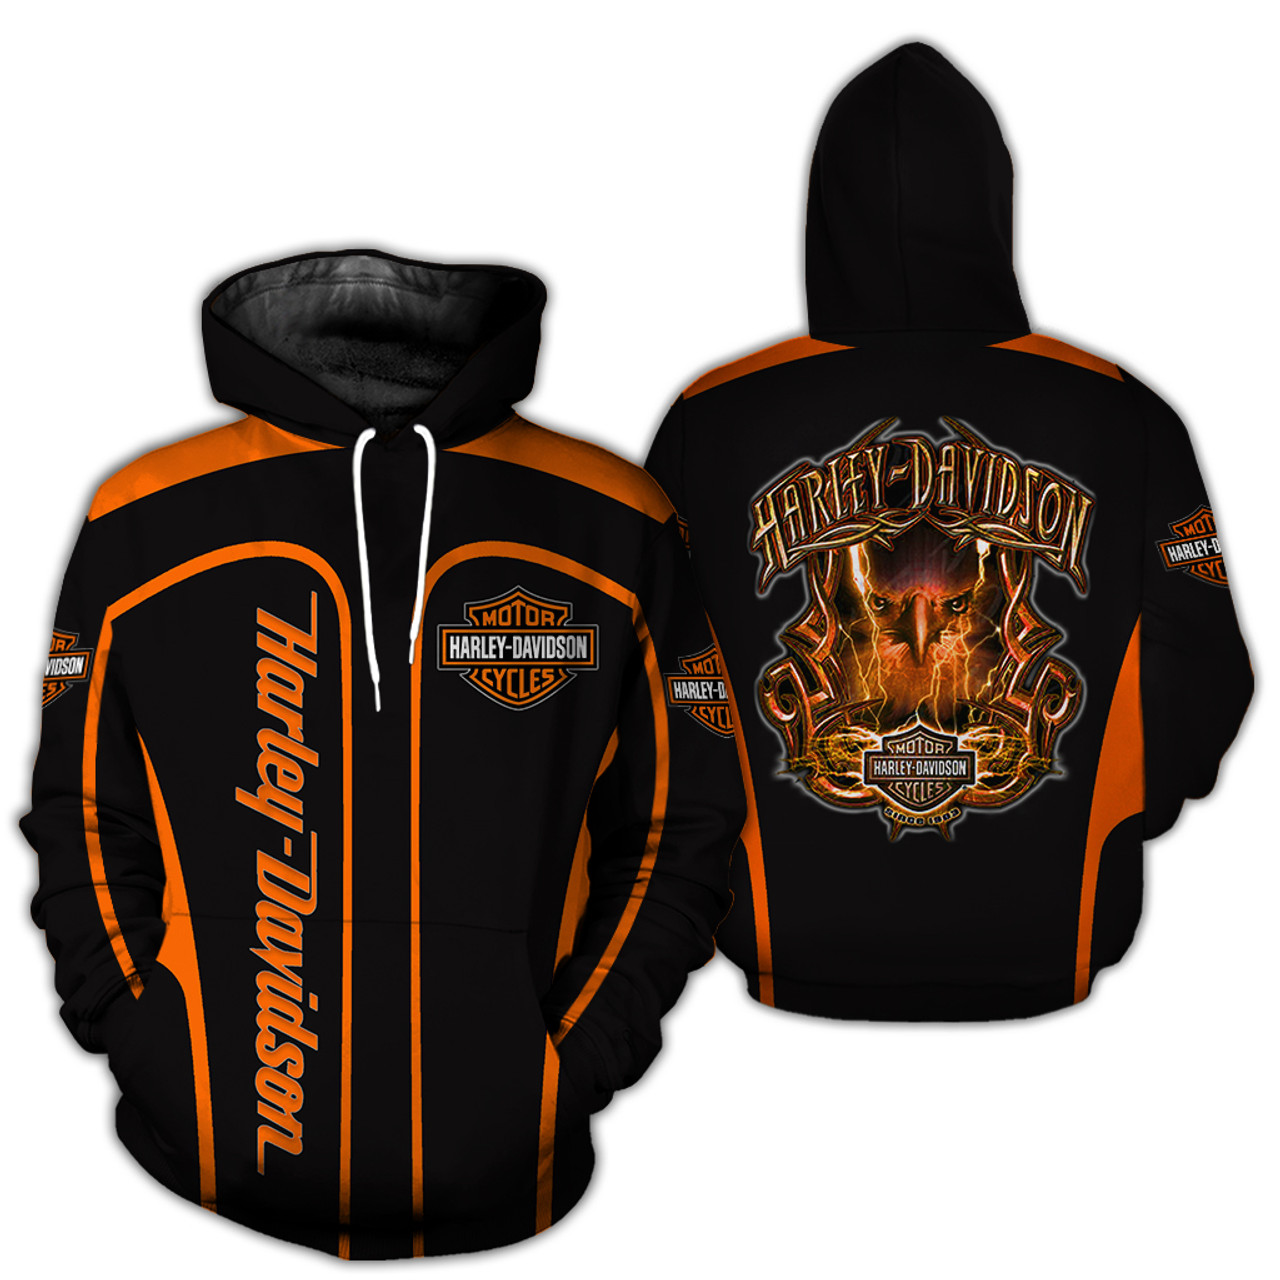 **(OFFICIAL-HARLEY-DAVIDSON-MOTORCYCLE-BIKER-PULLOVER-HOODIE/CUSTOM-DETAILED-3D-GRAPHIC-PRINTED-DOUBLE-SIDED-DESIGN/CLASSIC-OFFICIAL-CUSTOM-HARLEY-LOGOS & OFFICIAL-HARLEY-BLACK & ORANGE-COLORS/WARM-PREMIUM-RIDING-HARLEY-BIKERS-PULLOVER-HOODIES)**